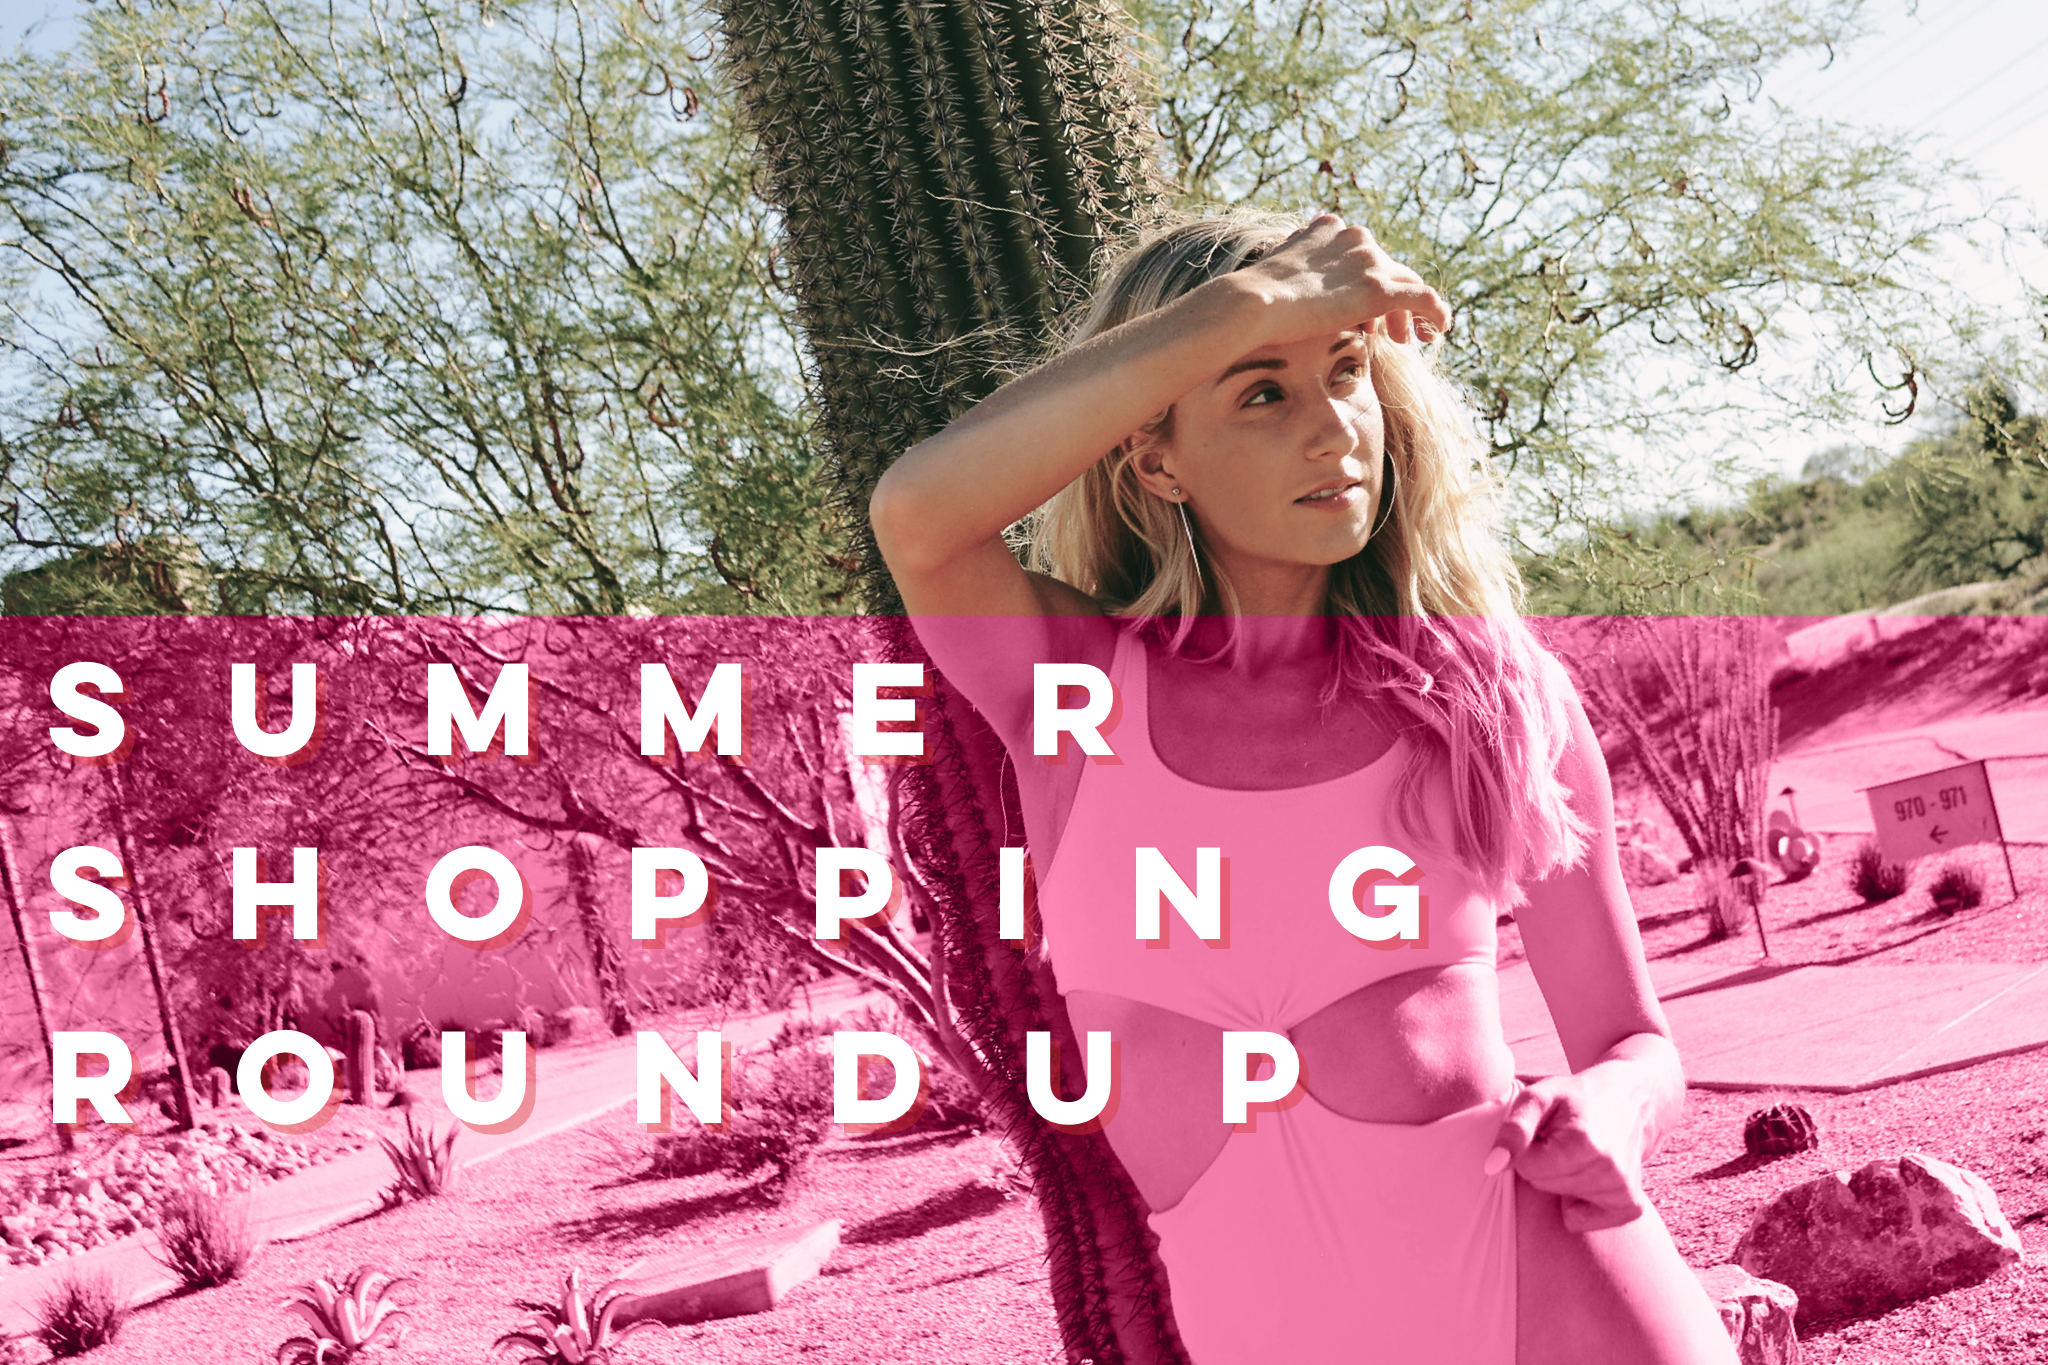 nastia_liukin_shopping_summer_outfit_guide